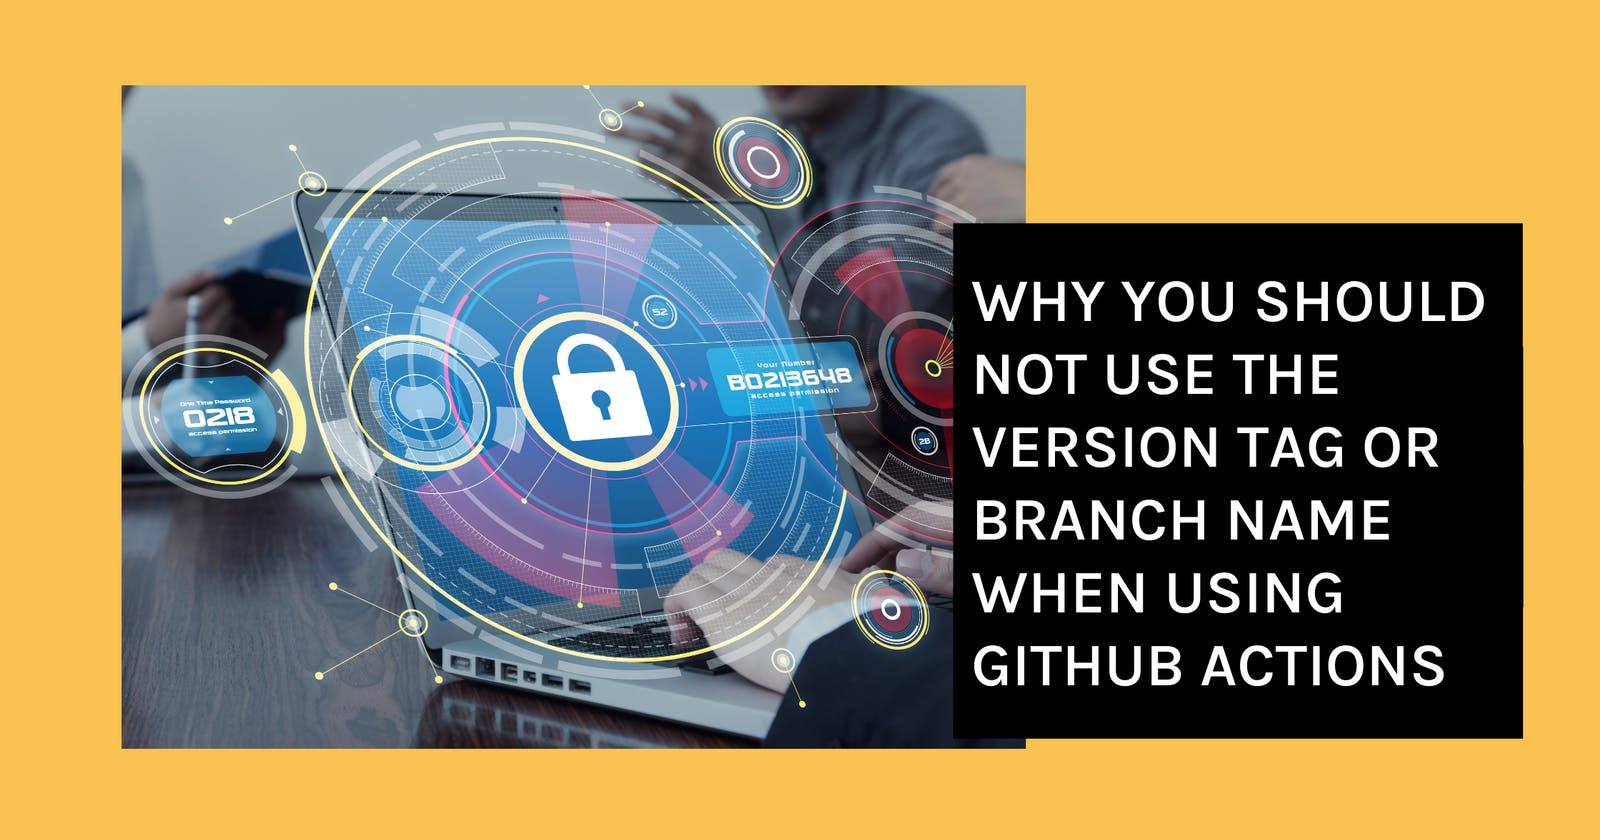 Why You Should Not Use The Version Tag Or Branch Name When Using GitHub Actions